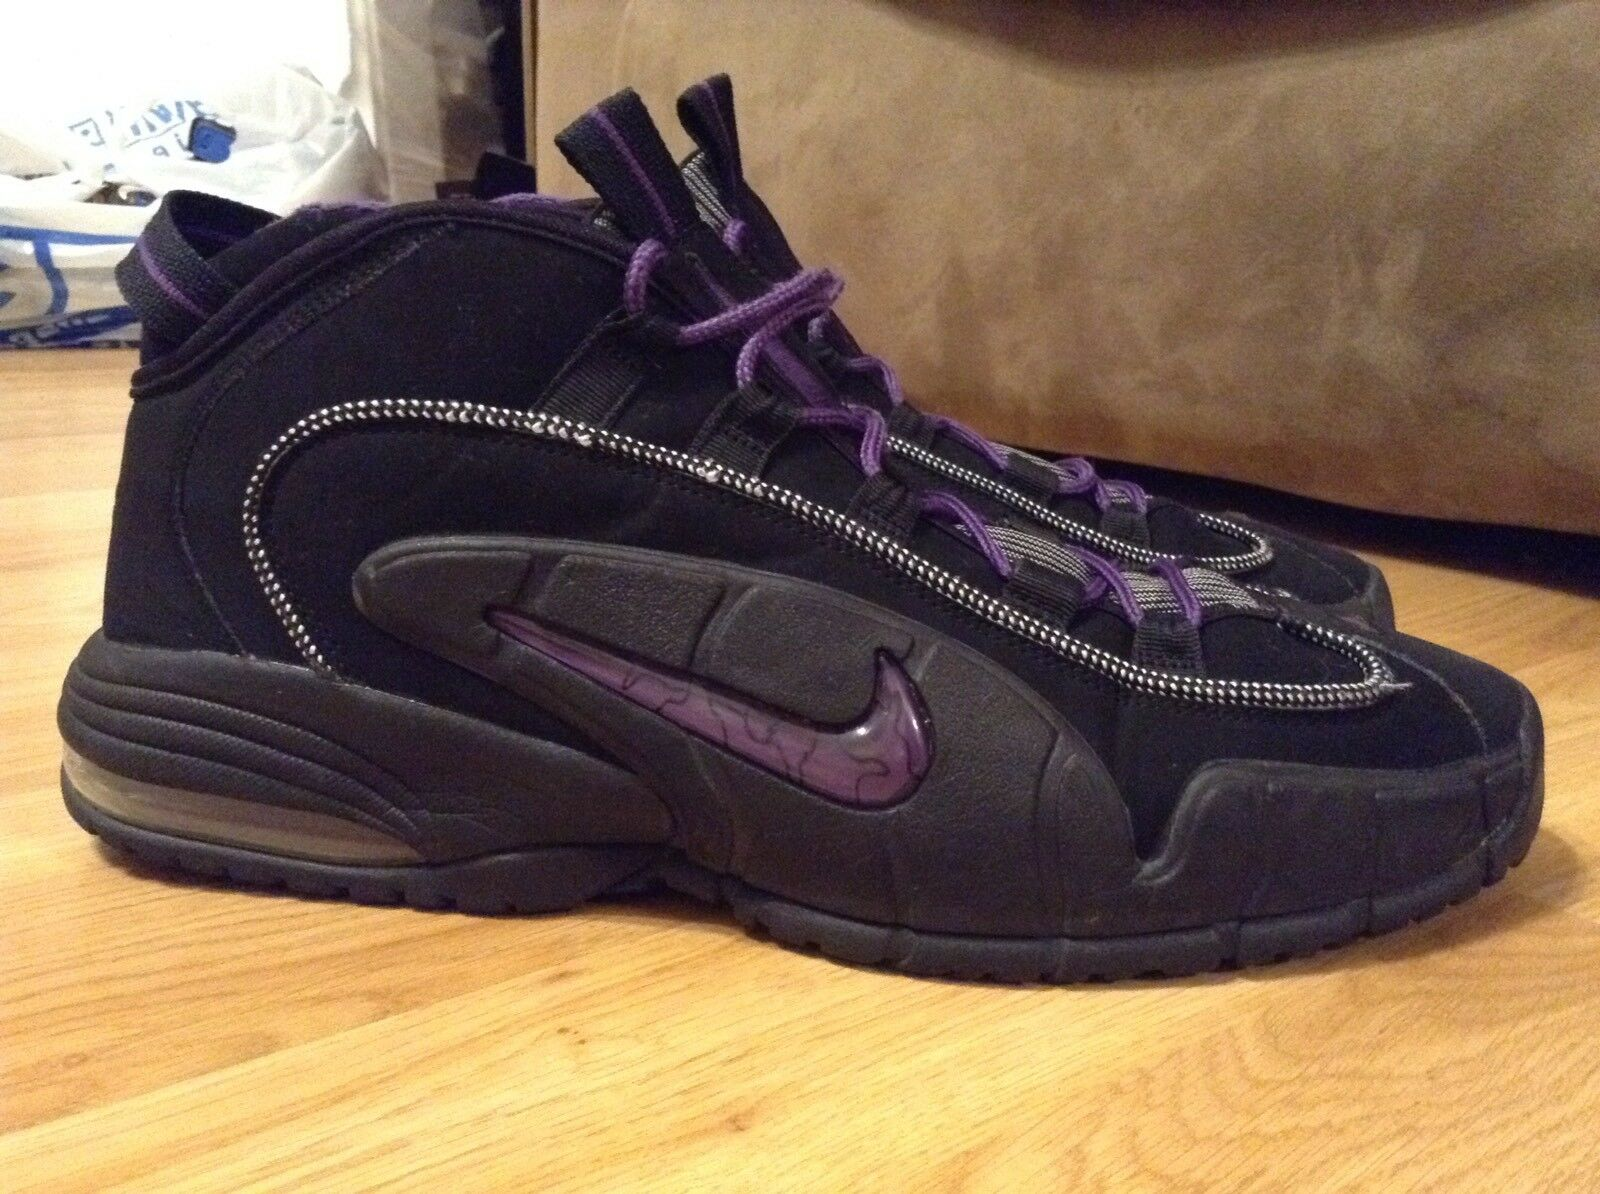 44081403fc16 Mens Nike Air Max Penny Penny Penny 1 Phoenix Suns Basketball Shoes  311089-002 Size